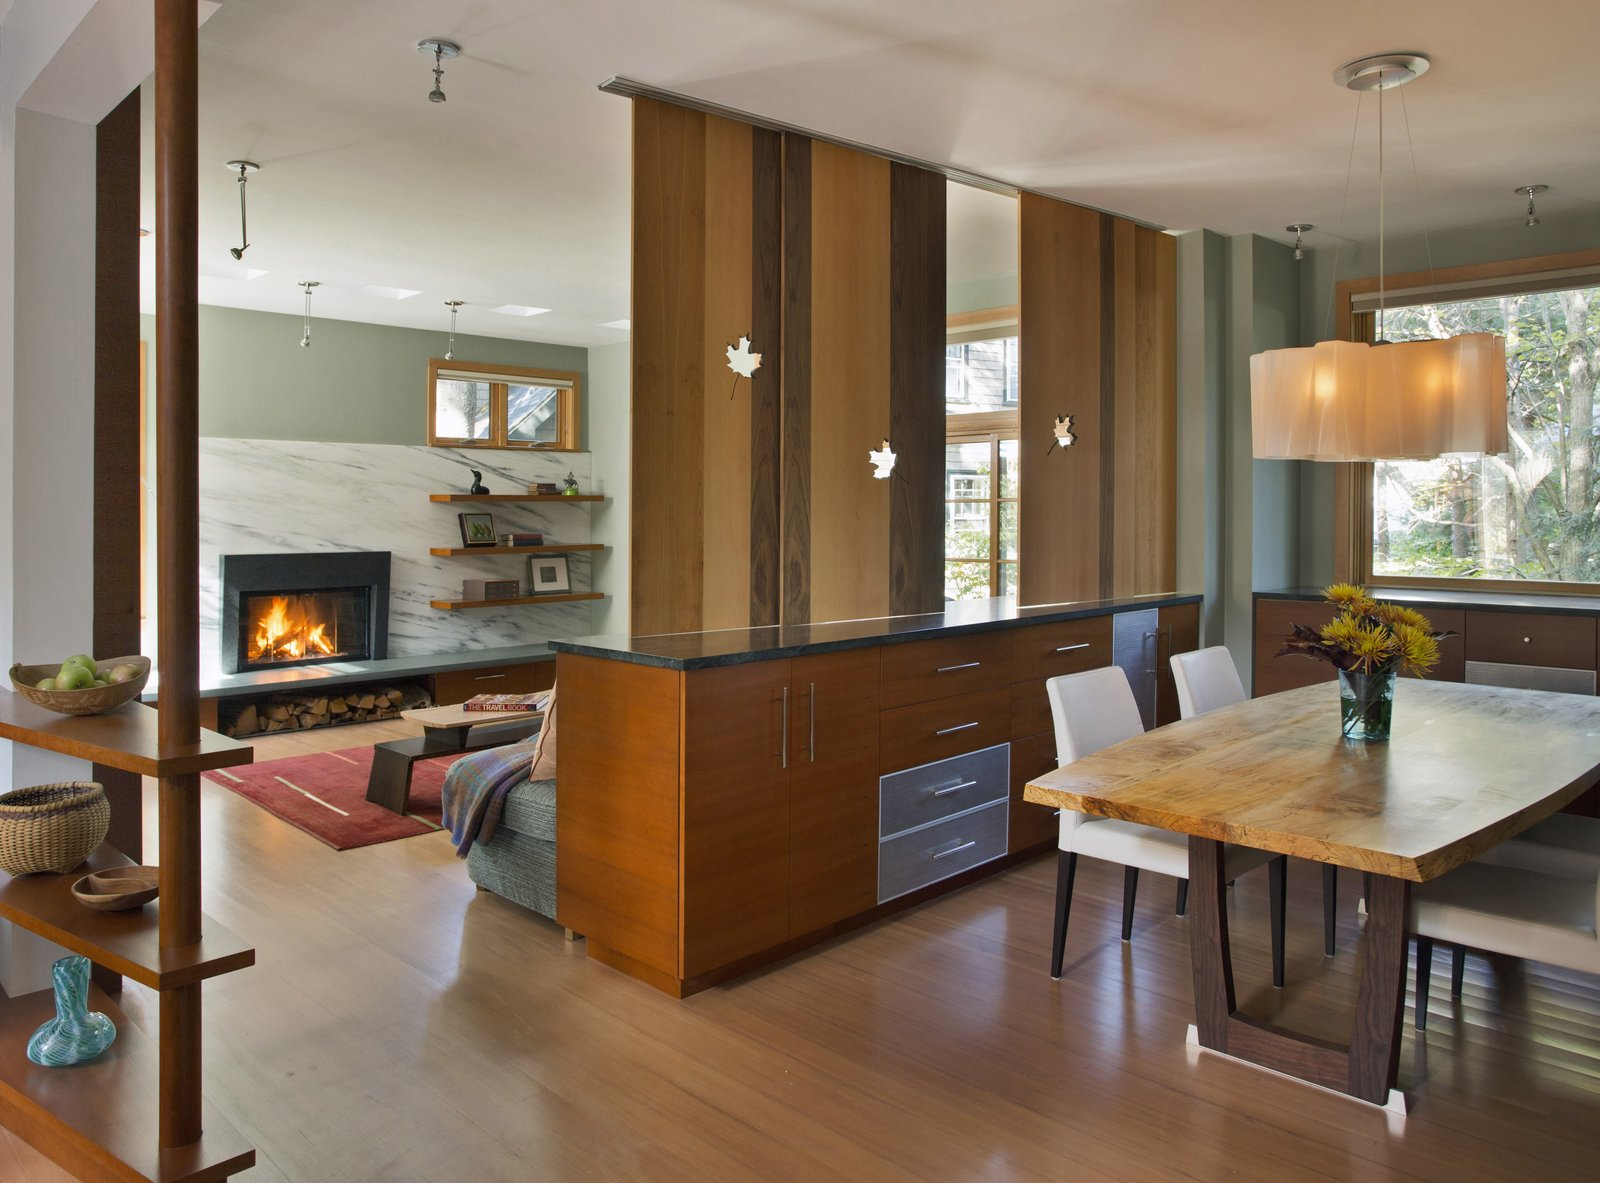 Sliding screens of veneer with leaf cut-outs between the dining room and living room.  Sustainable Urban Villa by Wolf Architects, Inc.